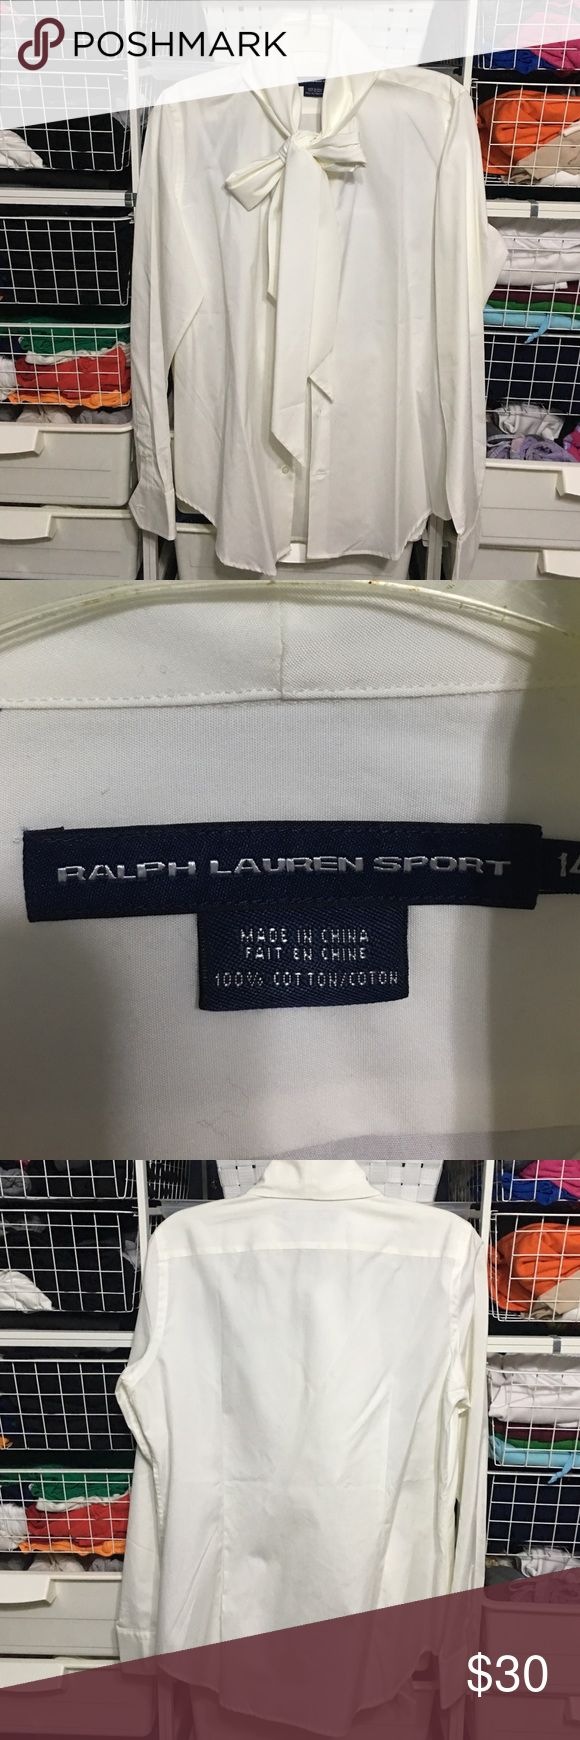 Ralph Lauren Sport White Blouse White blouse with long tie that can be worn tied into a beautiful bow or left untied as a long scarf look. Ralph Lauren Tops Button Down Shirts